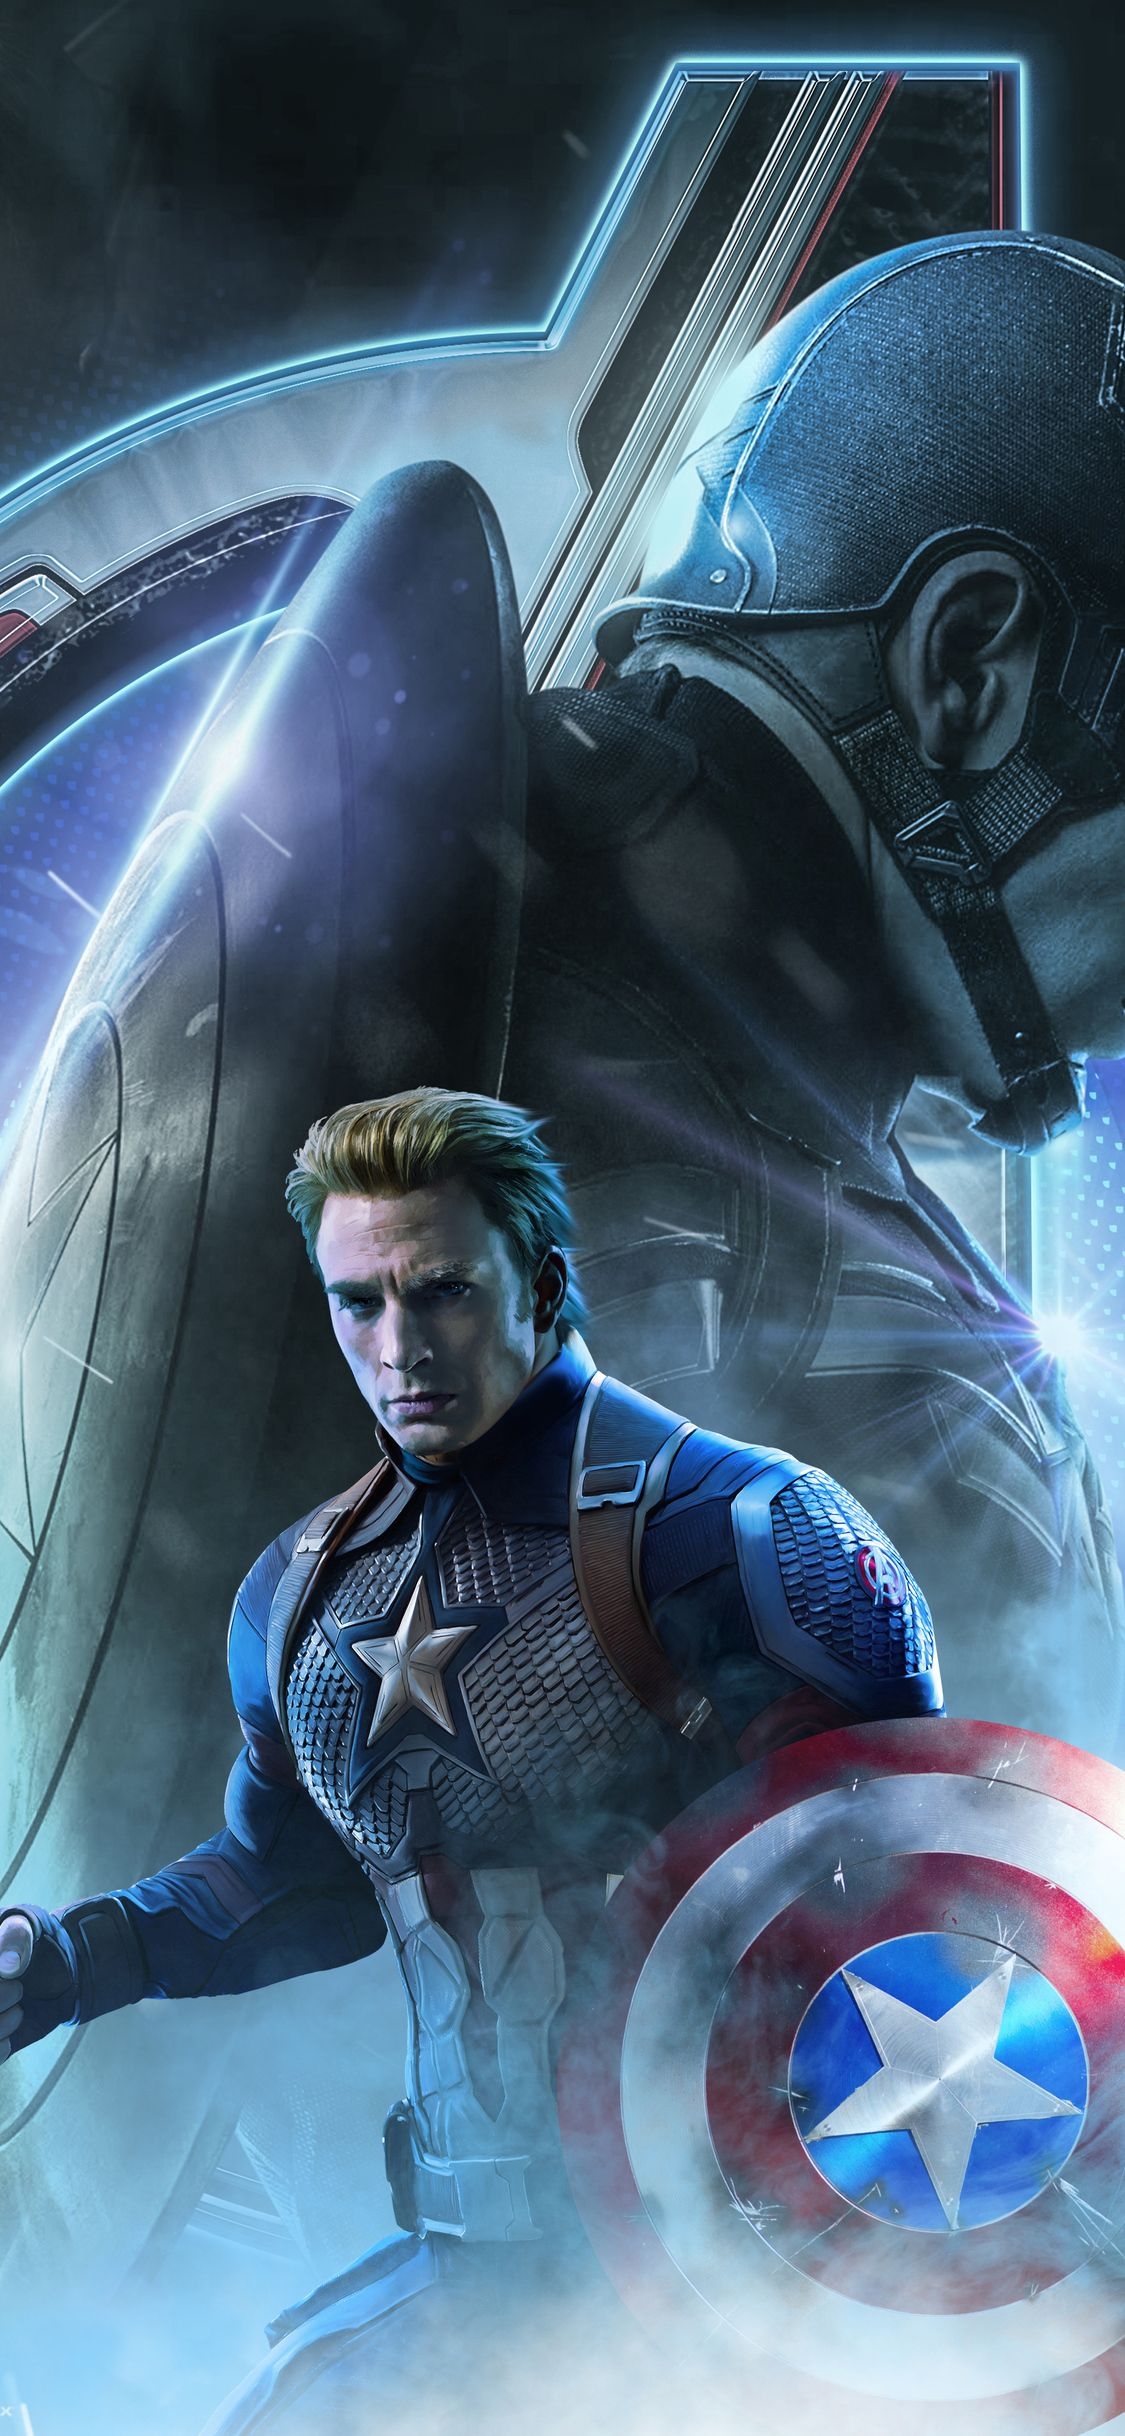 1125x2436 Captain America In Avengers Endgame 2019 Iphone Xs Iphone 10 Iphone X Hd 4k Wallpapers Images In 2020 Captain America Wallpaper Captain America Art Marvel